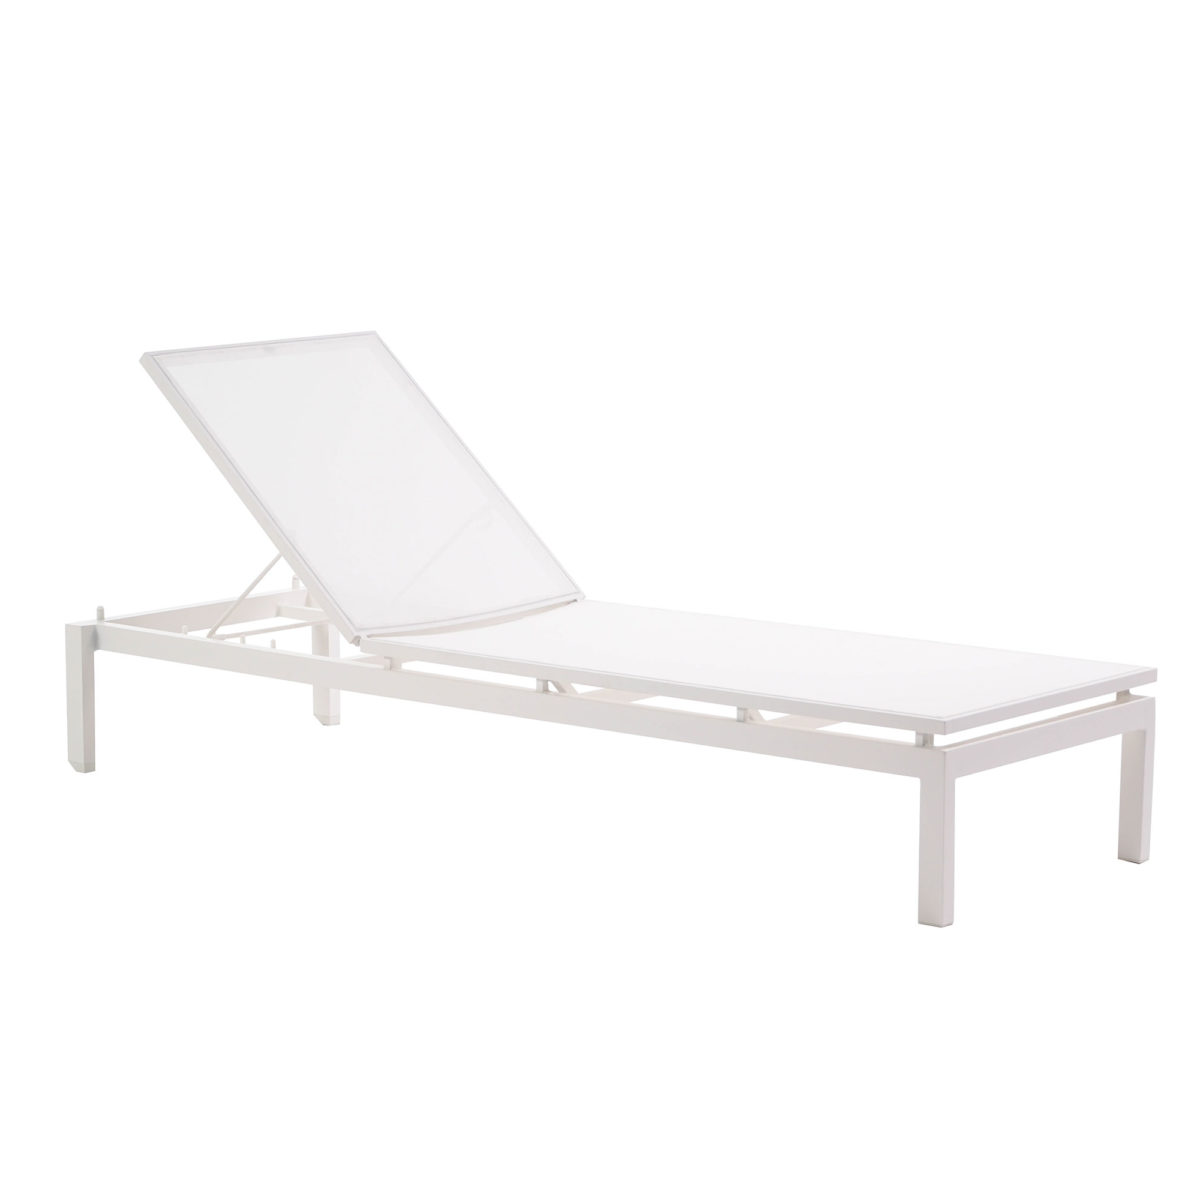 The Ratana Toscana lounger in white.